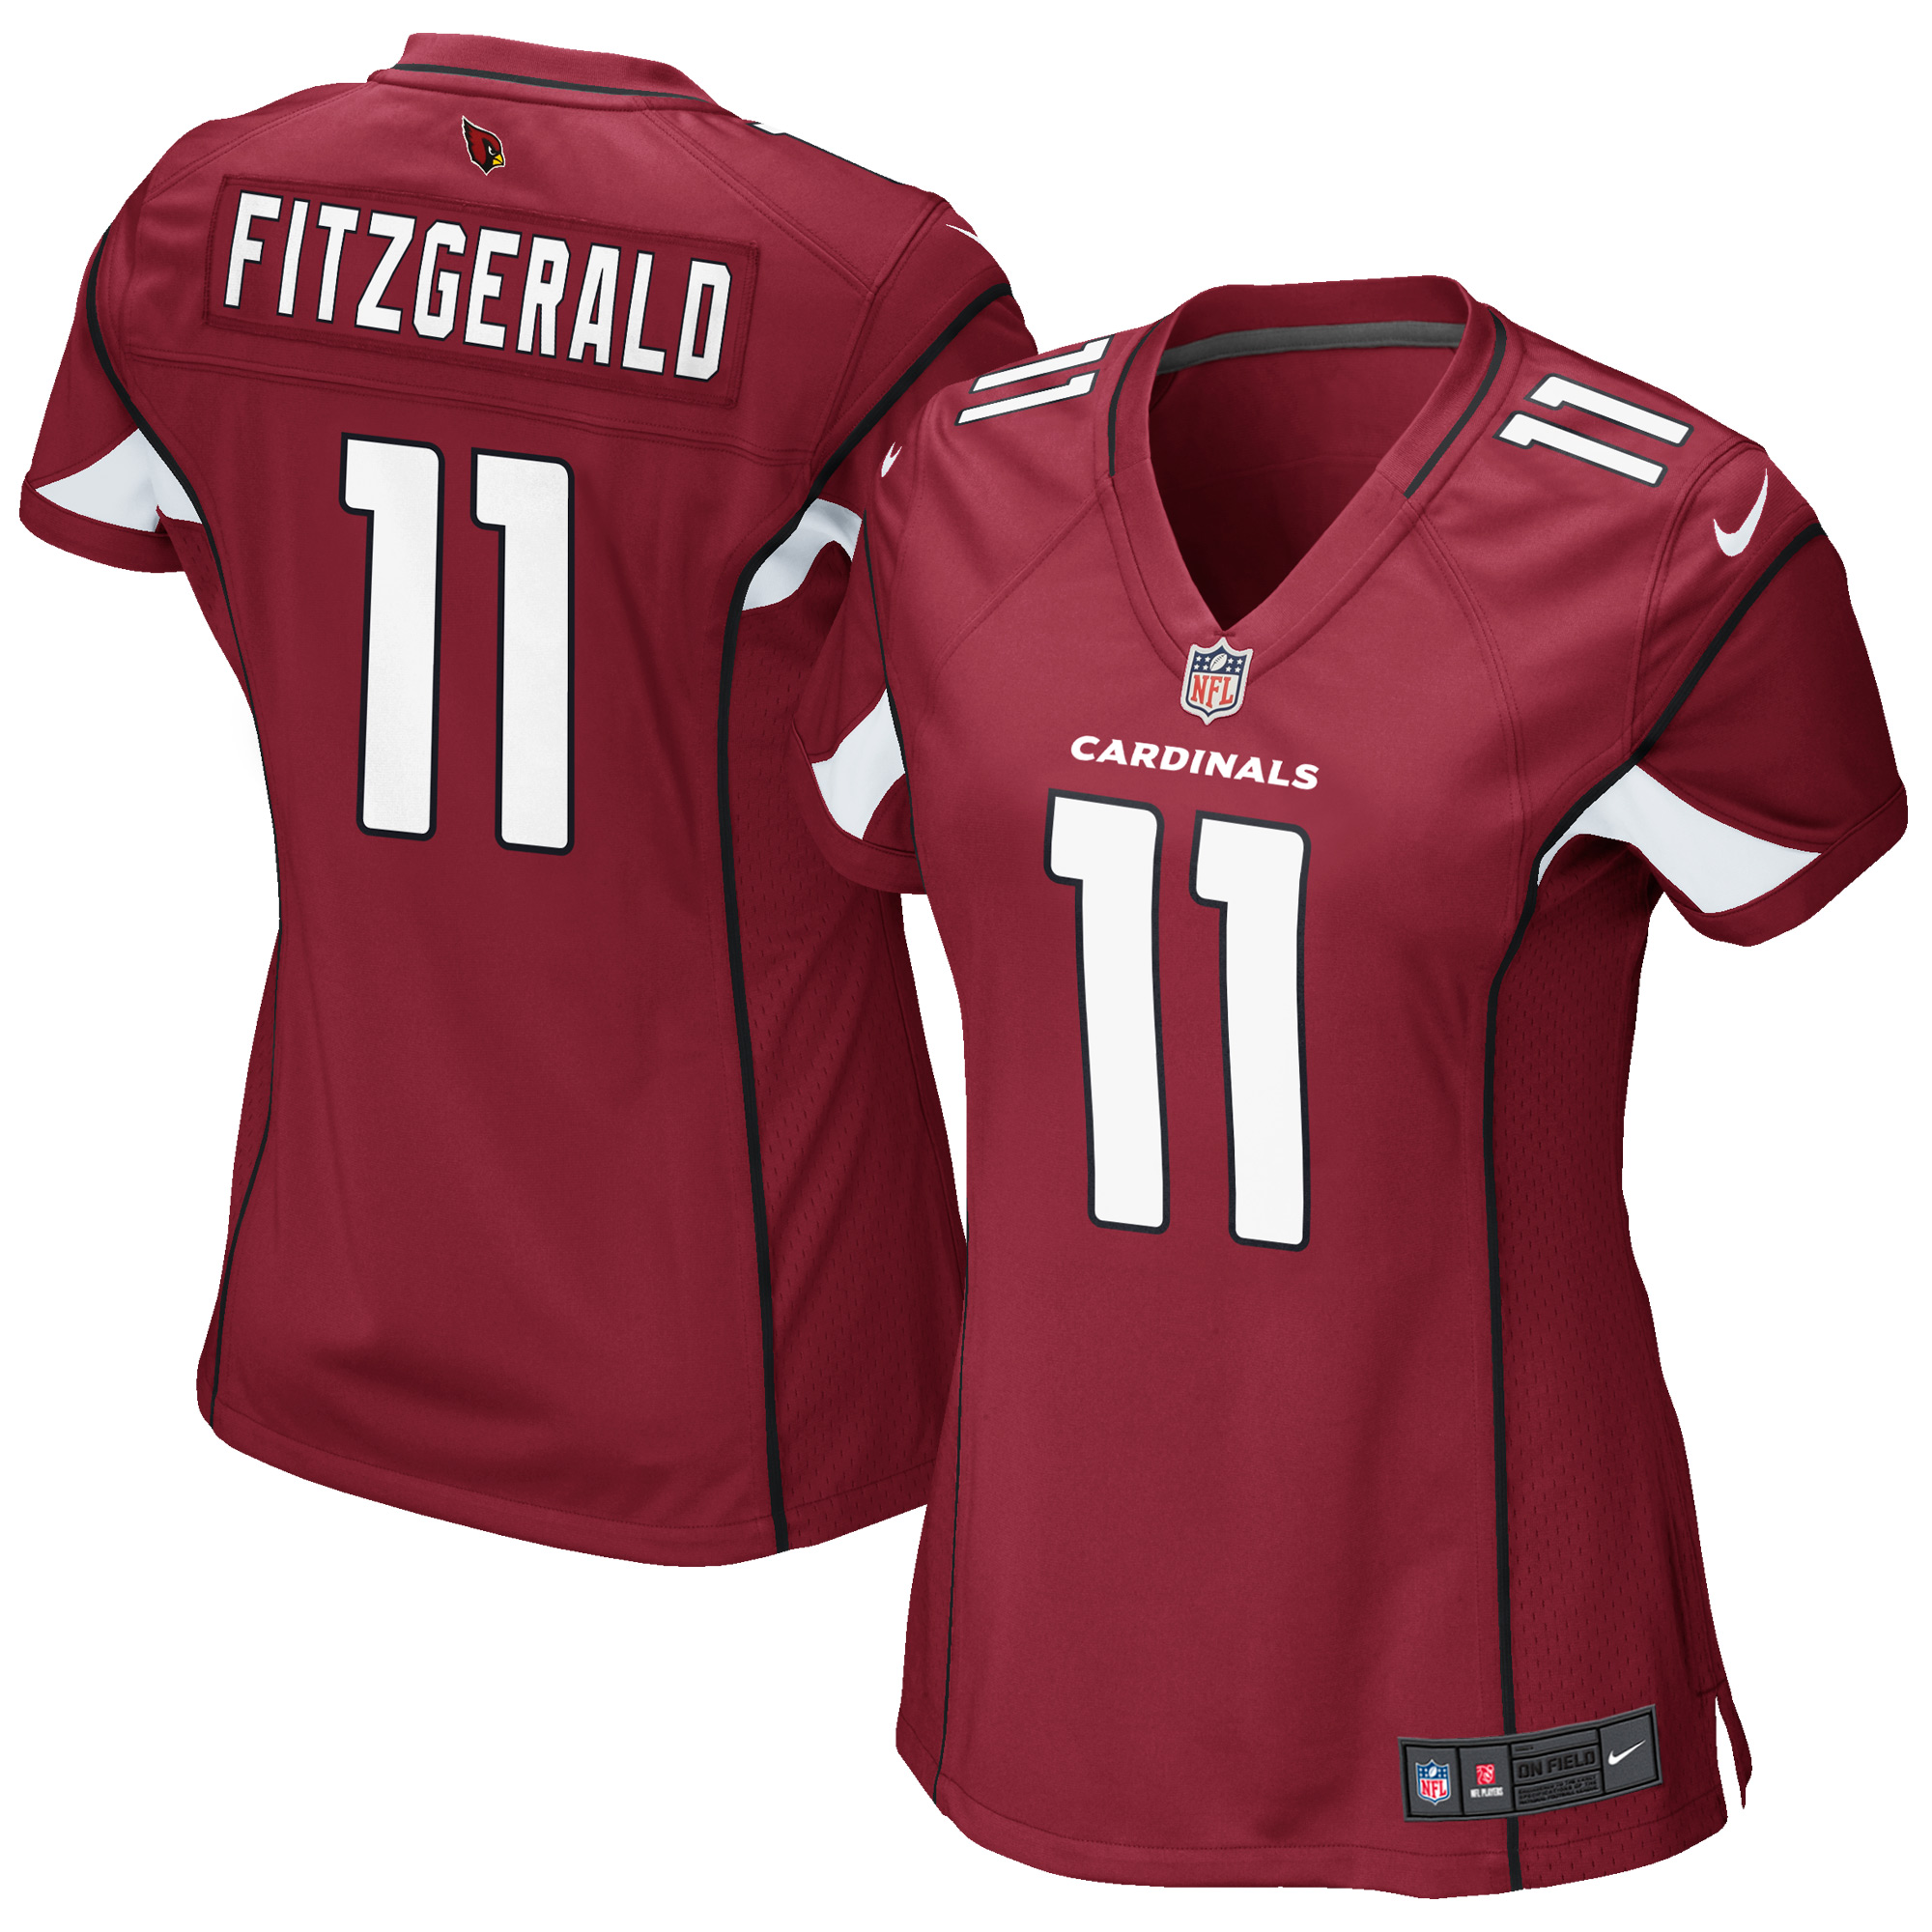 Larry Fitzgerald Arizona Cardinals Nike Girls Youth Replica Game Jersey - Cardinal